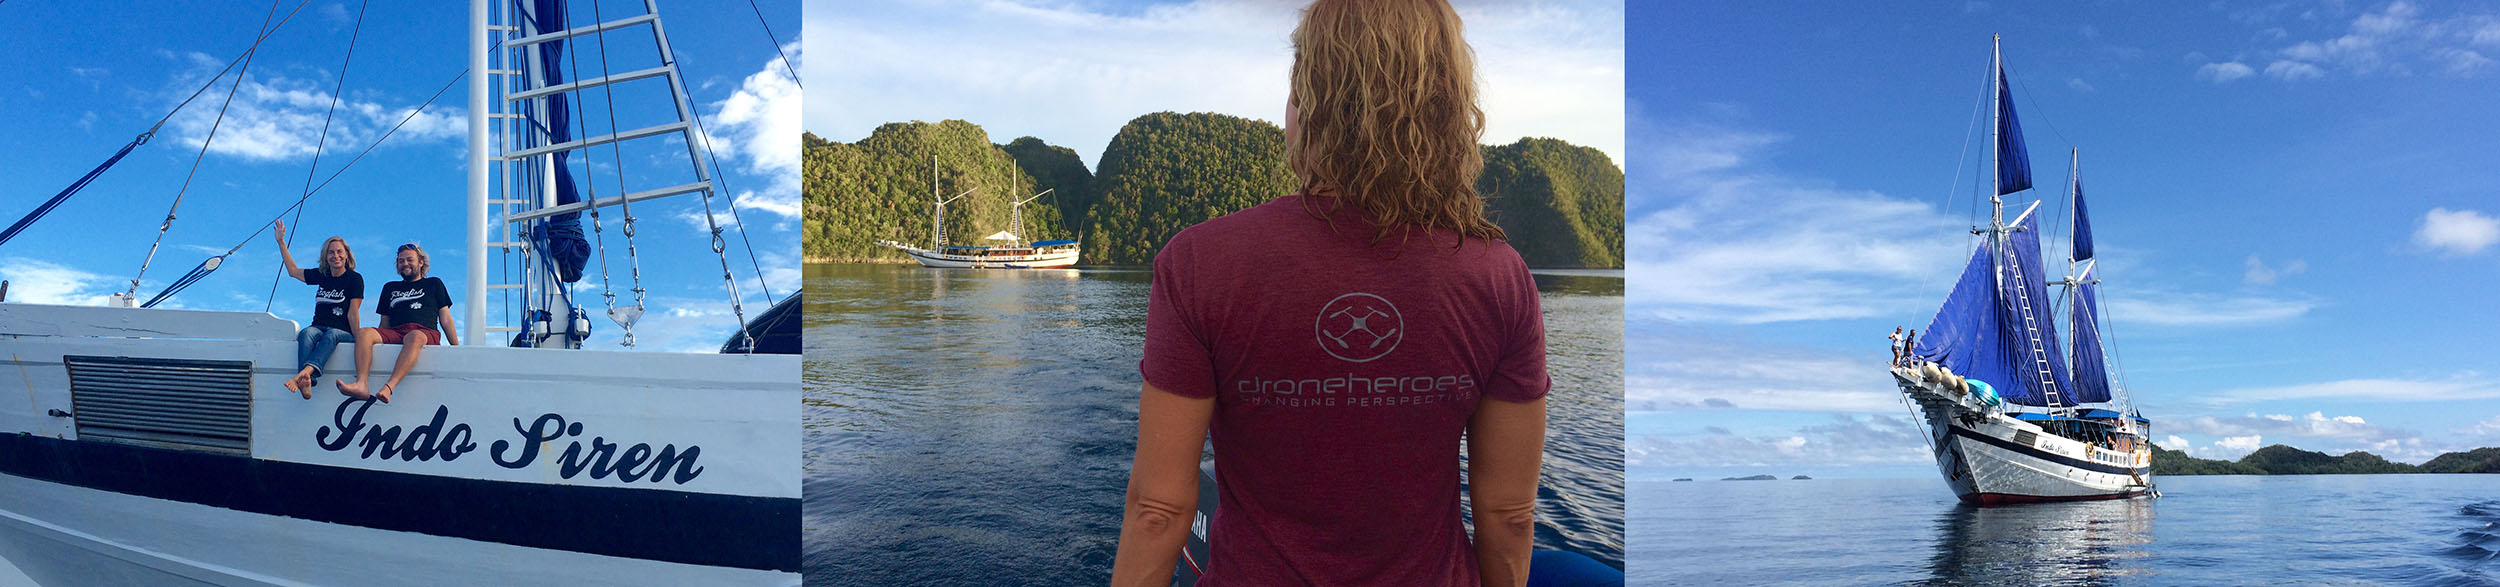 Join Atmosphere Resort on one of our Siren liveaboards with Worldwide Dive & Sail